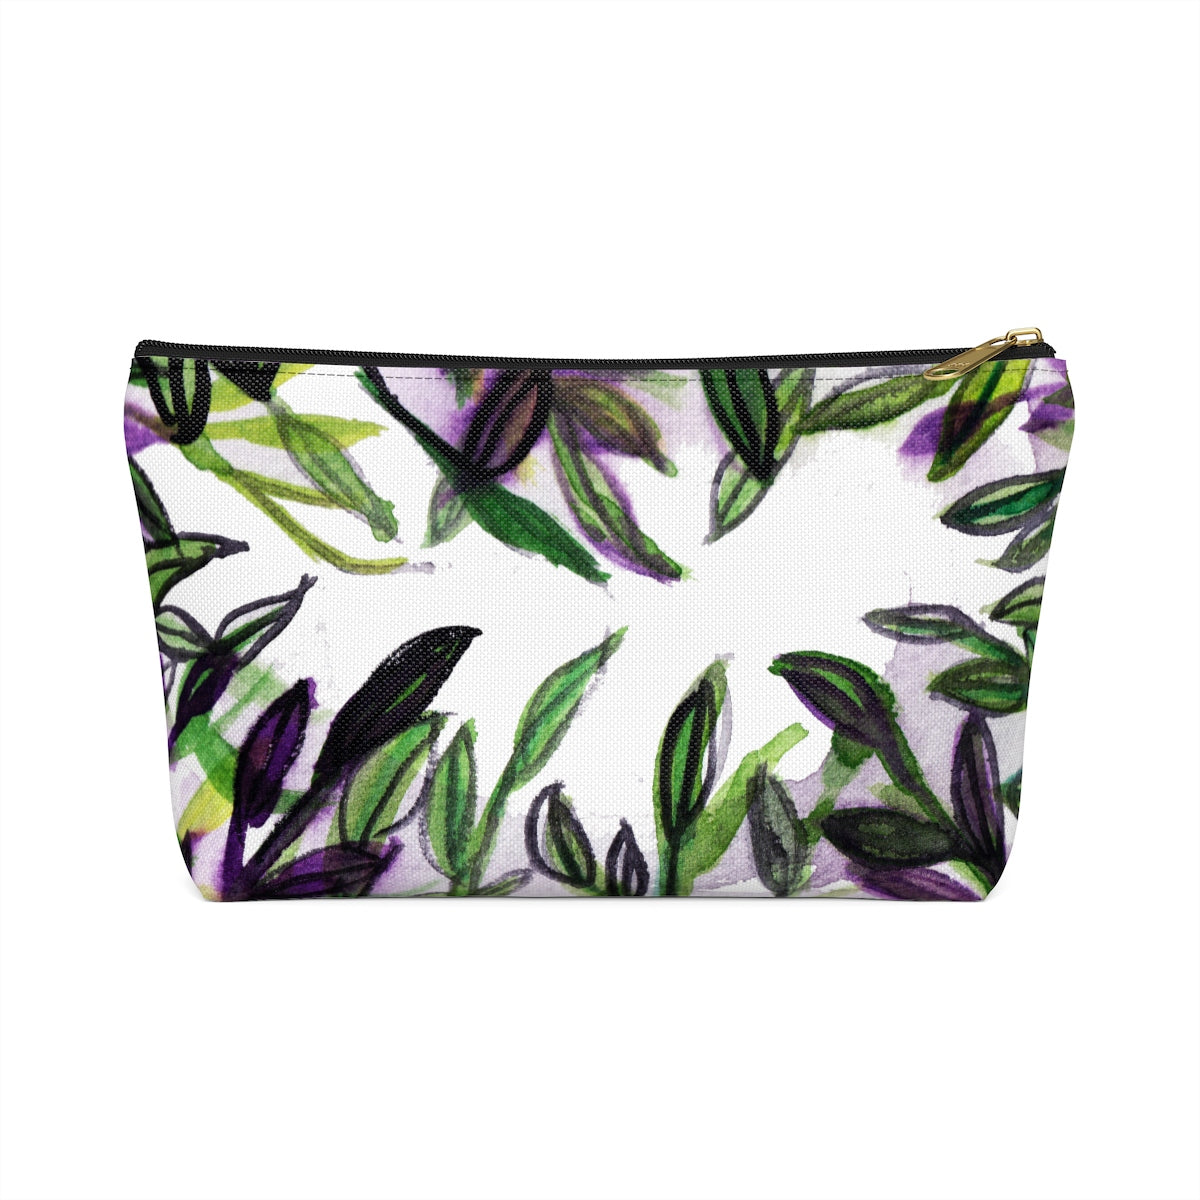 Green Foliage Print Accessory Pouch with T-bottom Makeup Bag - Made in USA-Accessory Pouch-Black-Large-Heidi Kimura Art LLC